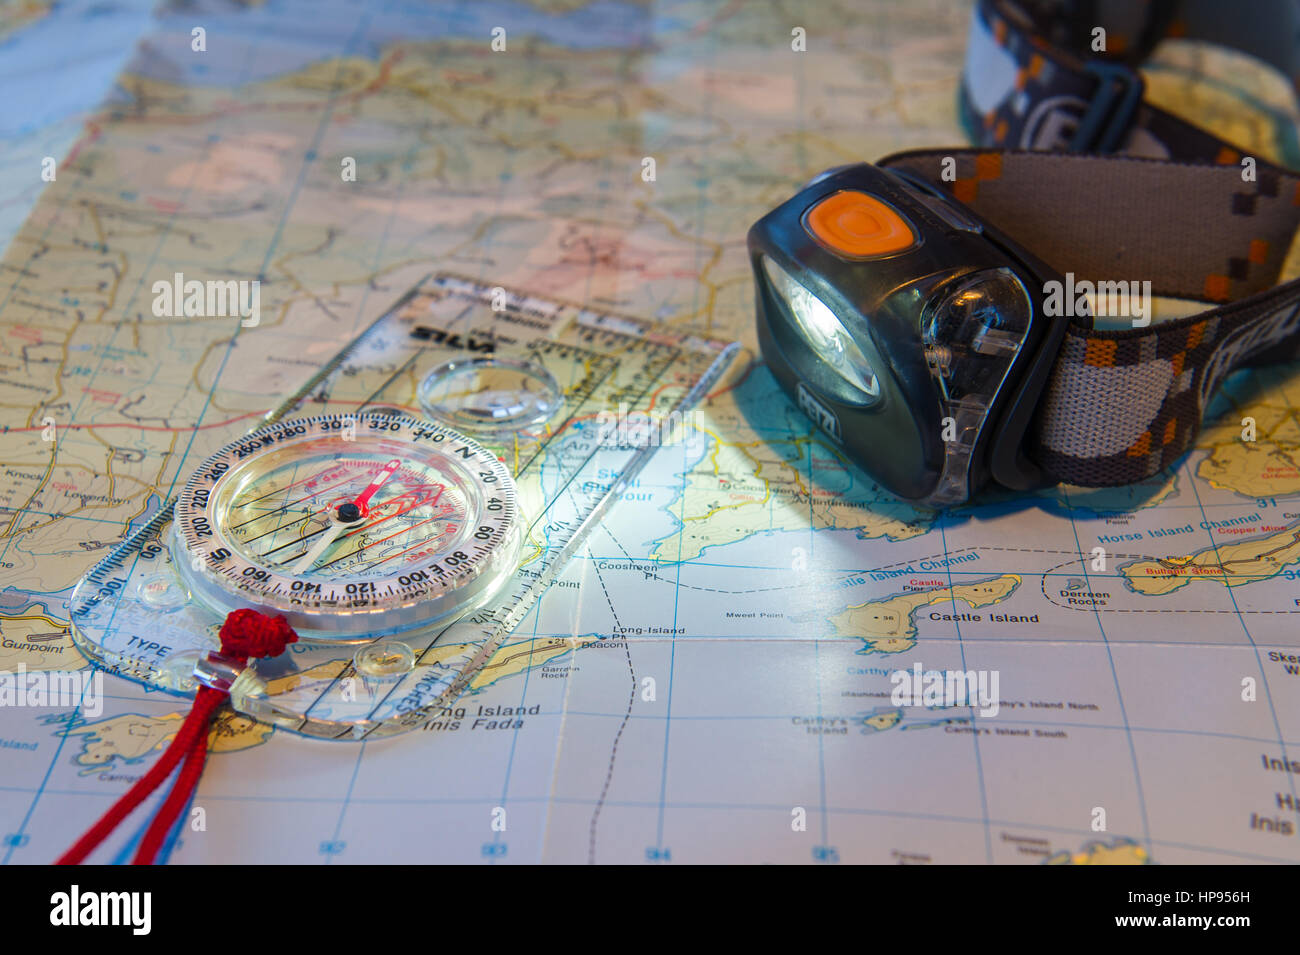 Petzl headtorch and a Silva Compass on a map of Ireland. - Stock Image